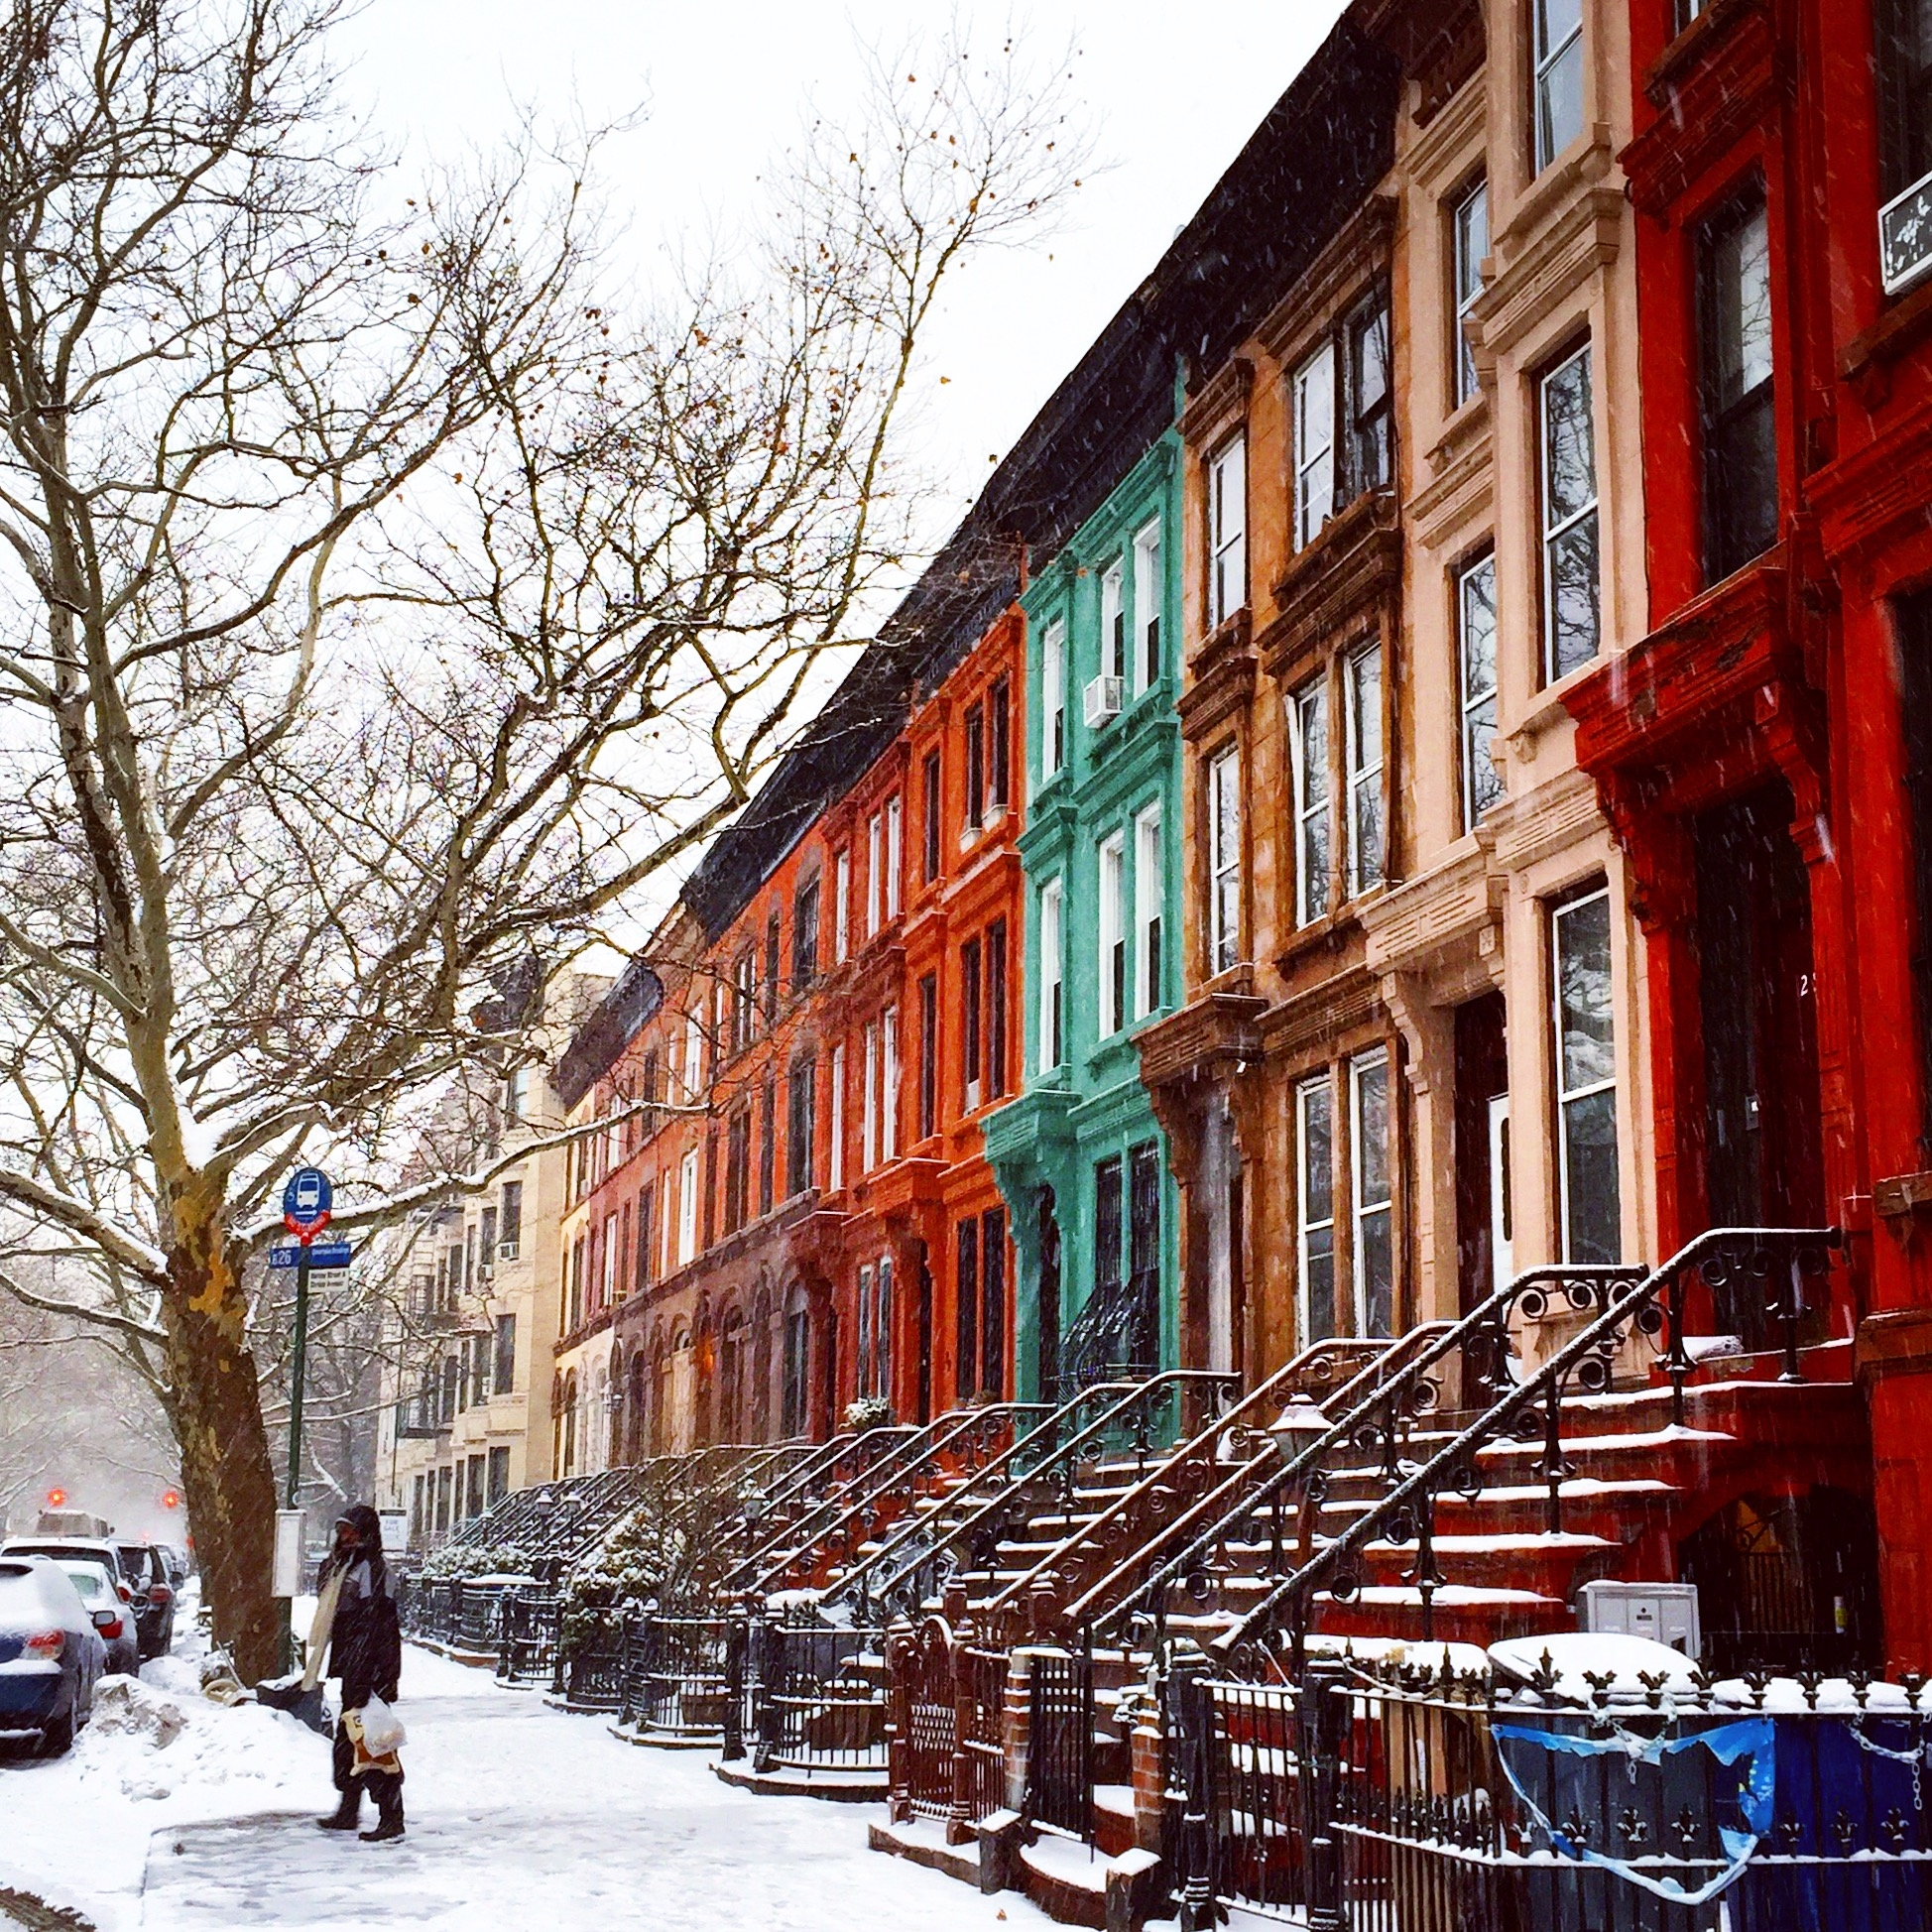 NYC Brooklyn Manhattan New York City Snow Winter Storm Colorful Houses Street Snow